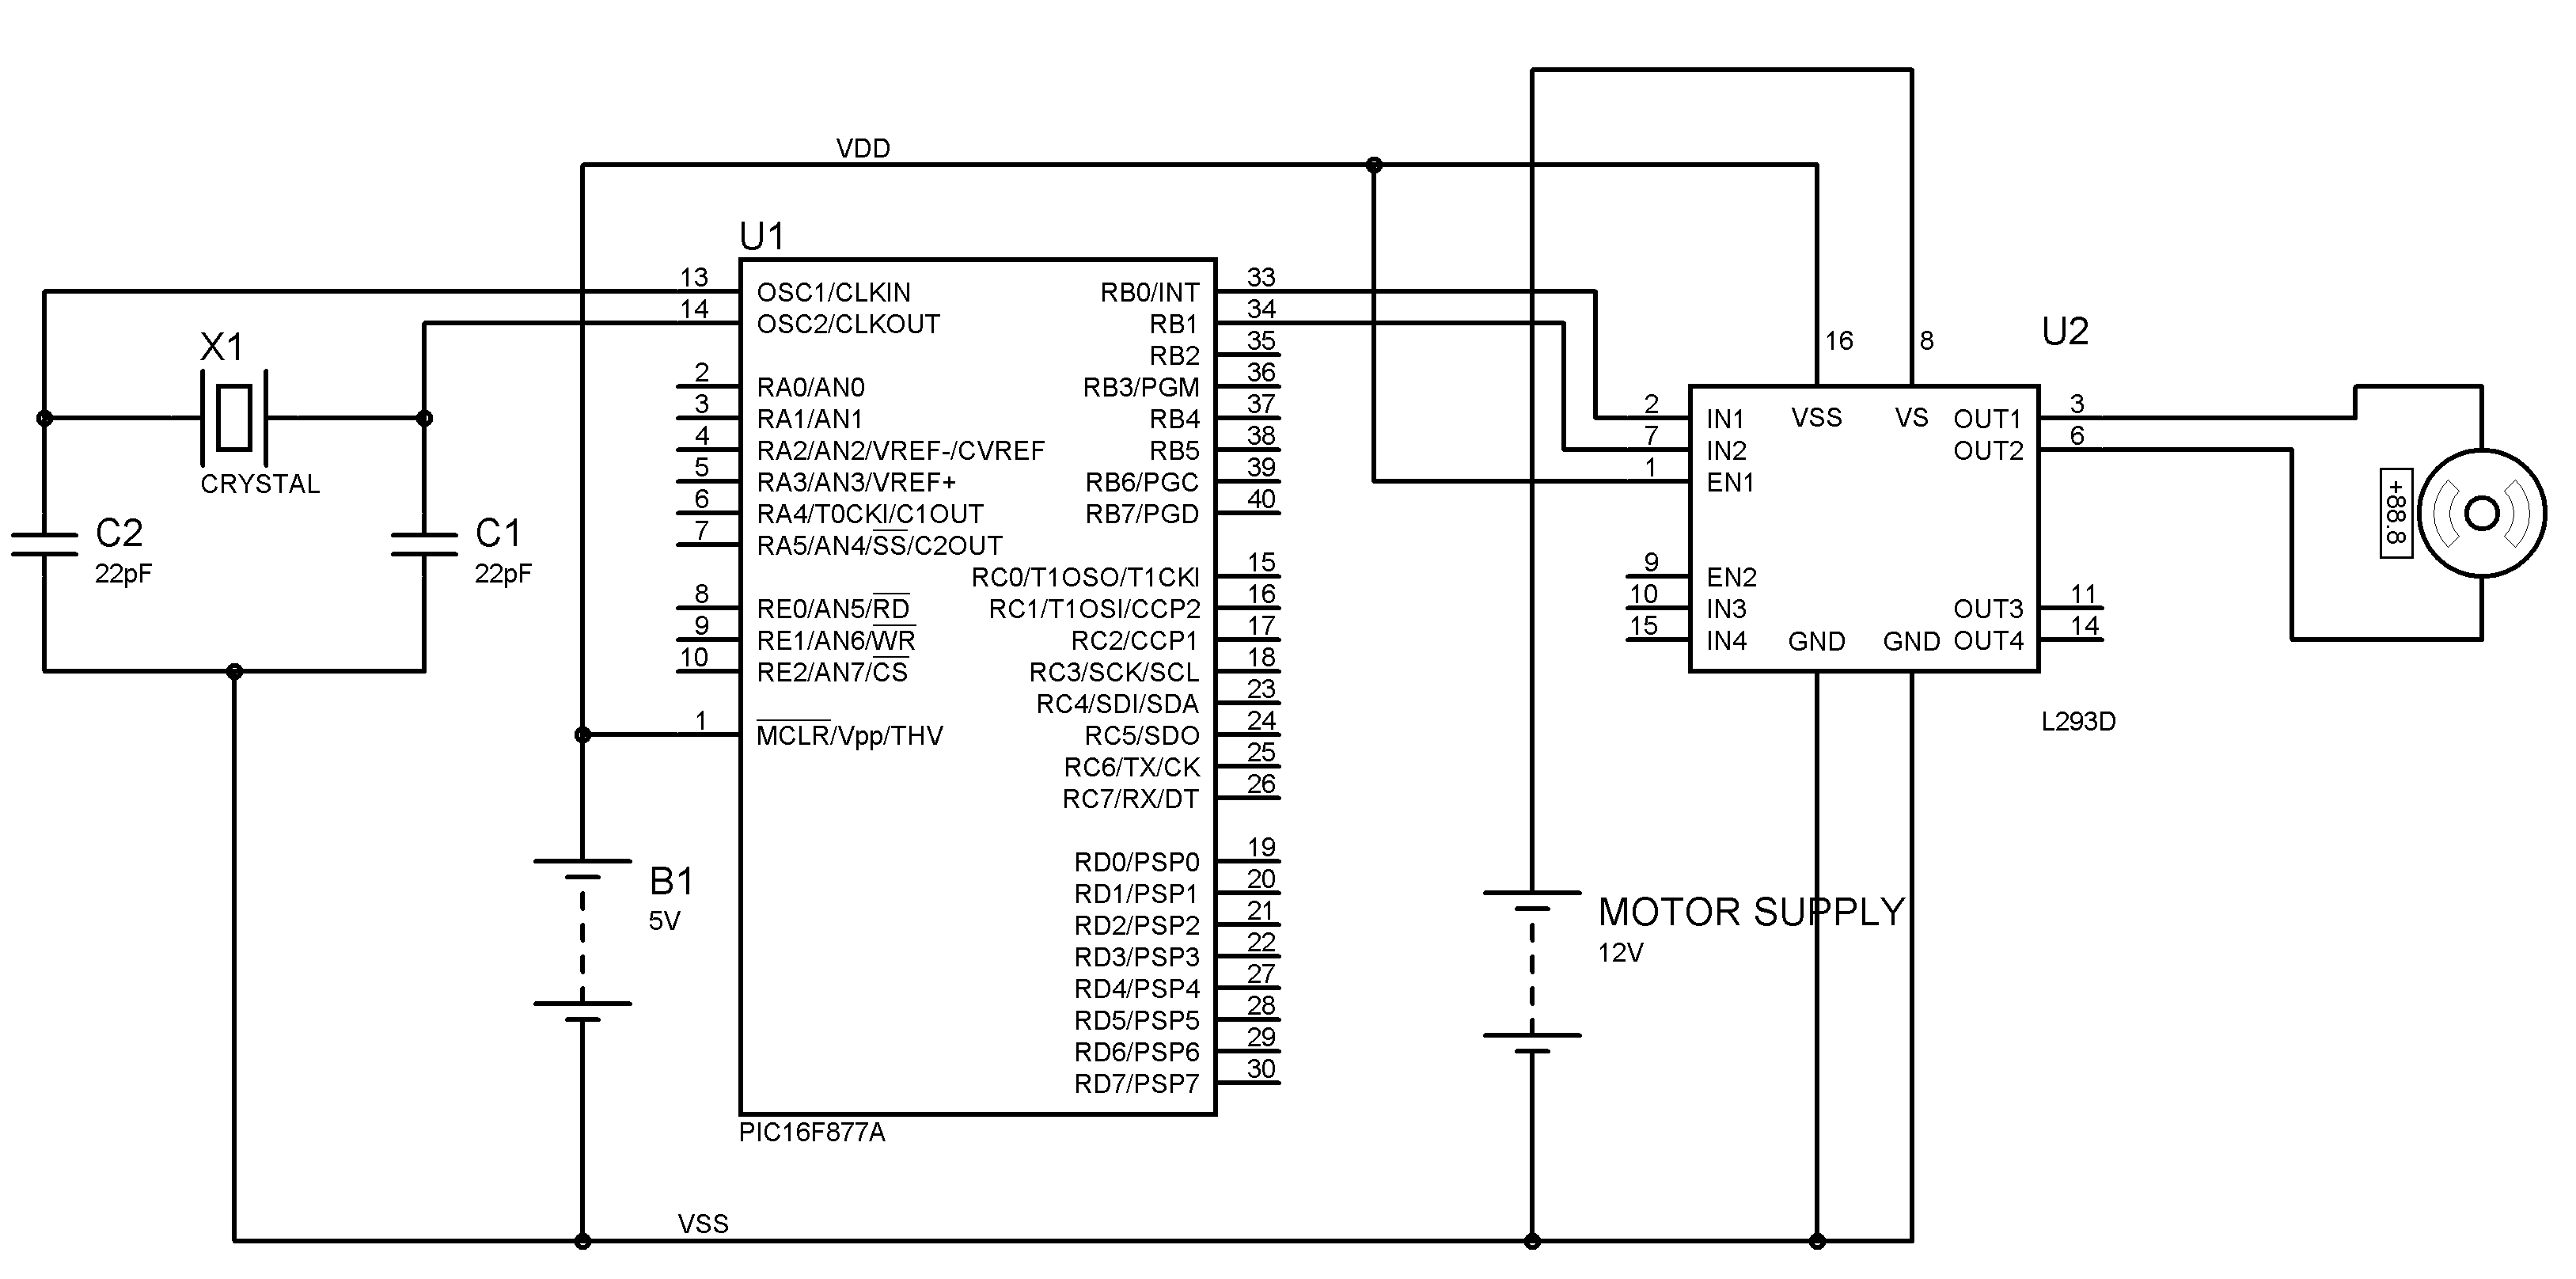 interfacing dc motor pic microcontroller using l293d mikroc interfacing dc motor pic microcontroller and l293d circuit diagram